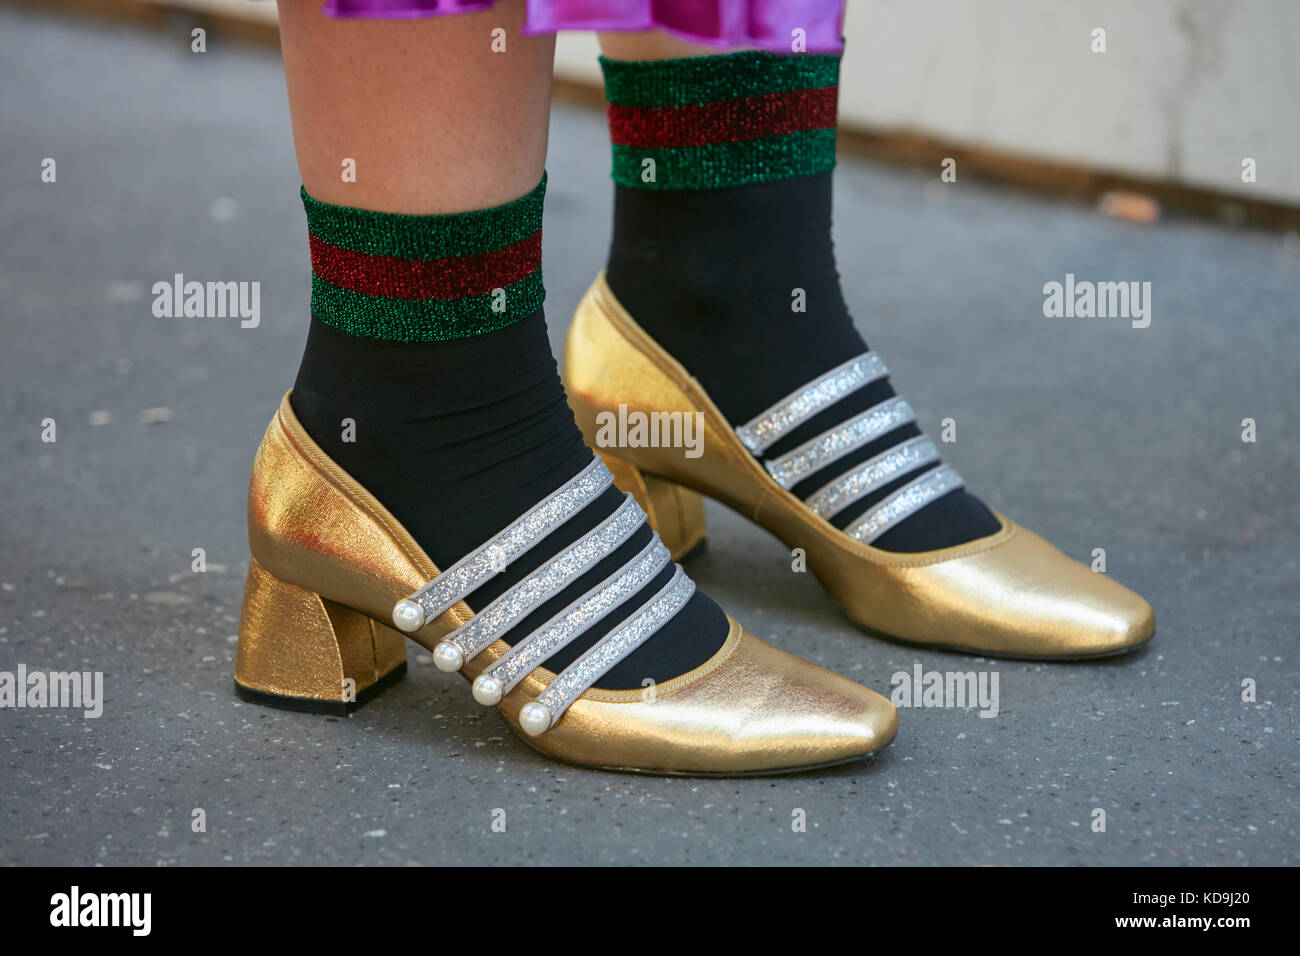 d28383b8a8a MILAN - SEPTEMBER 21  Woman with golden shoes with silver glitter belts and  Gucci socks before Fendi fashion show